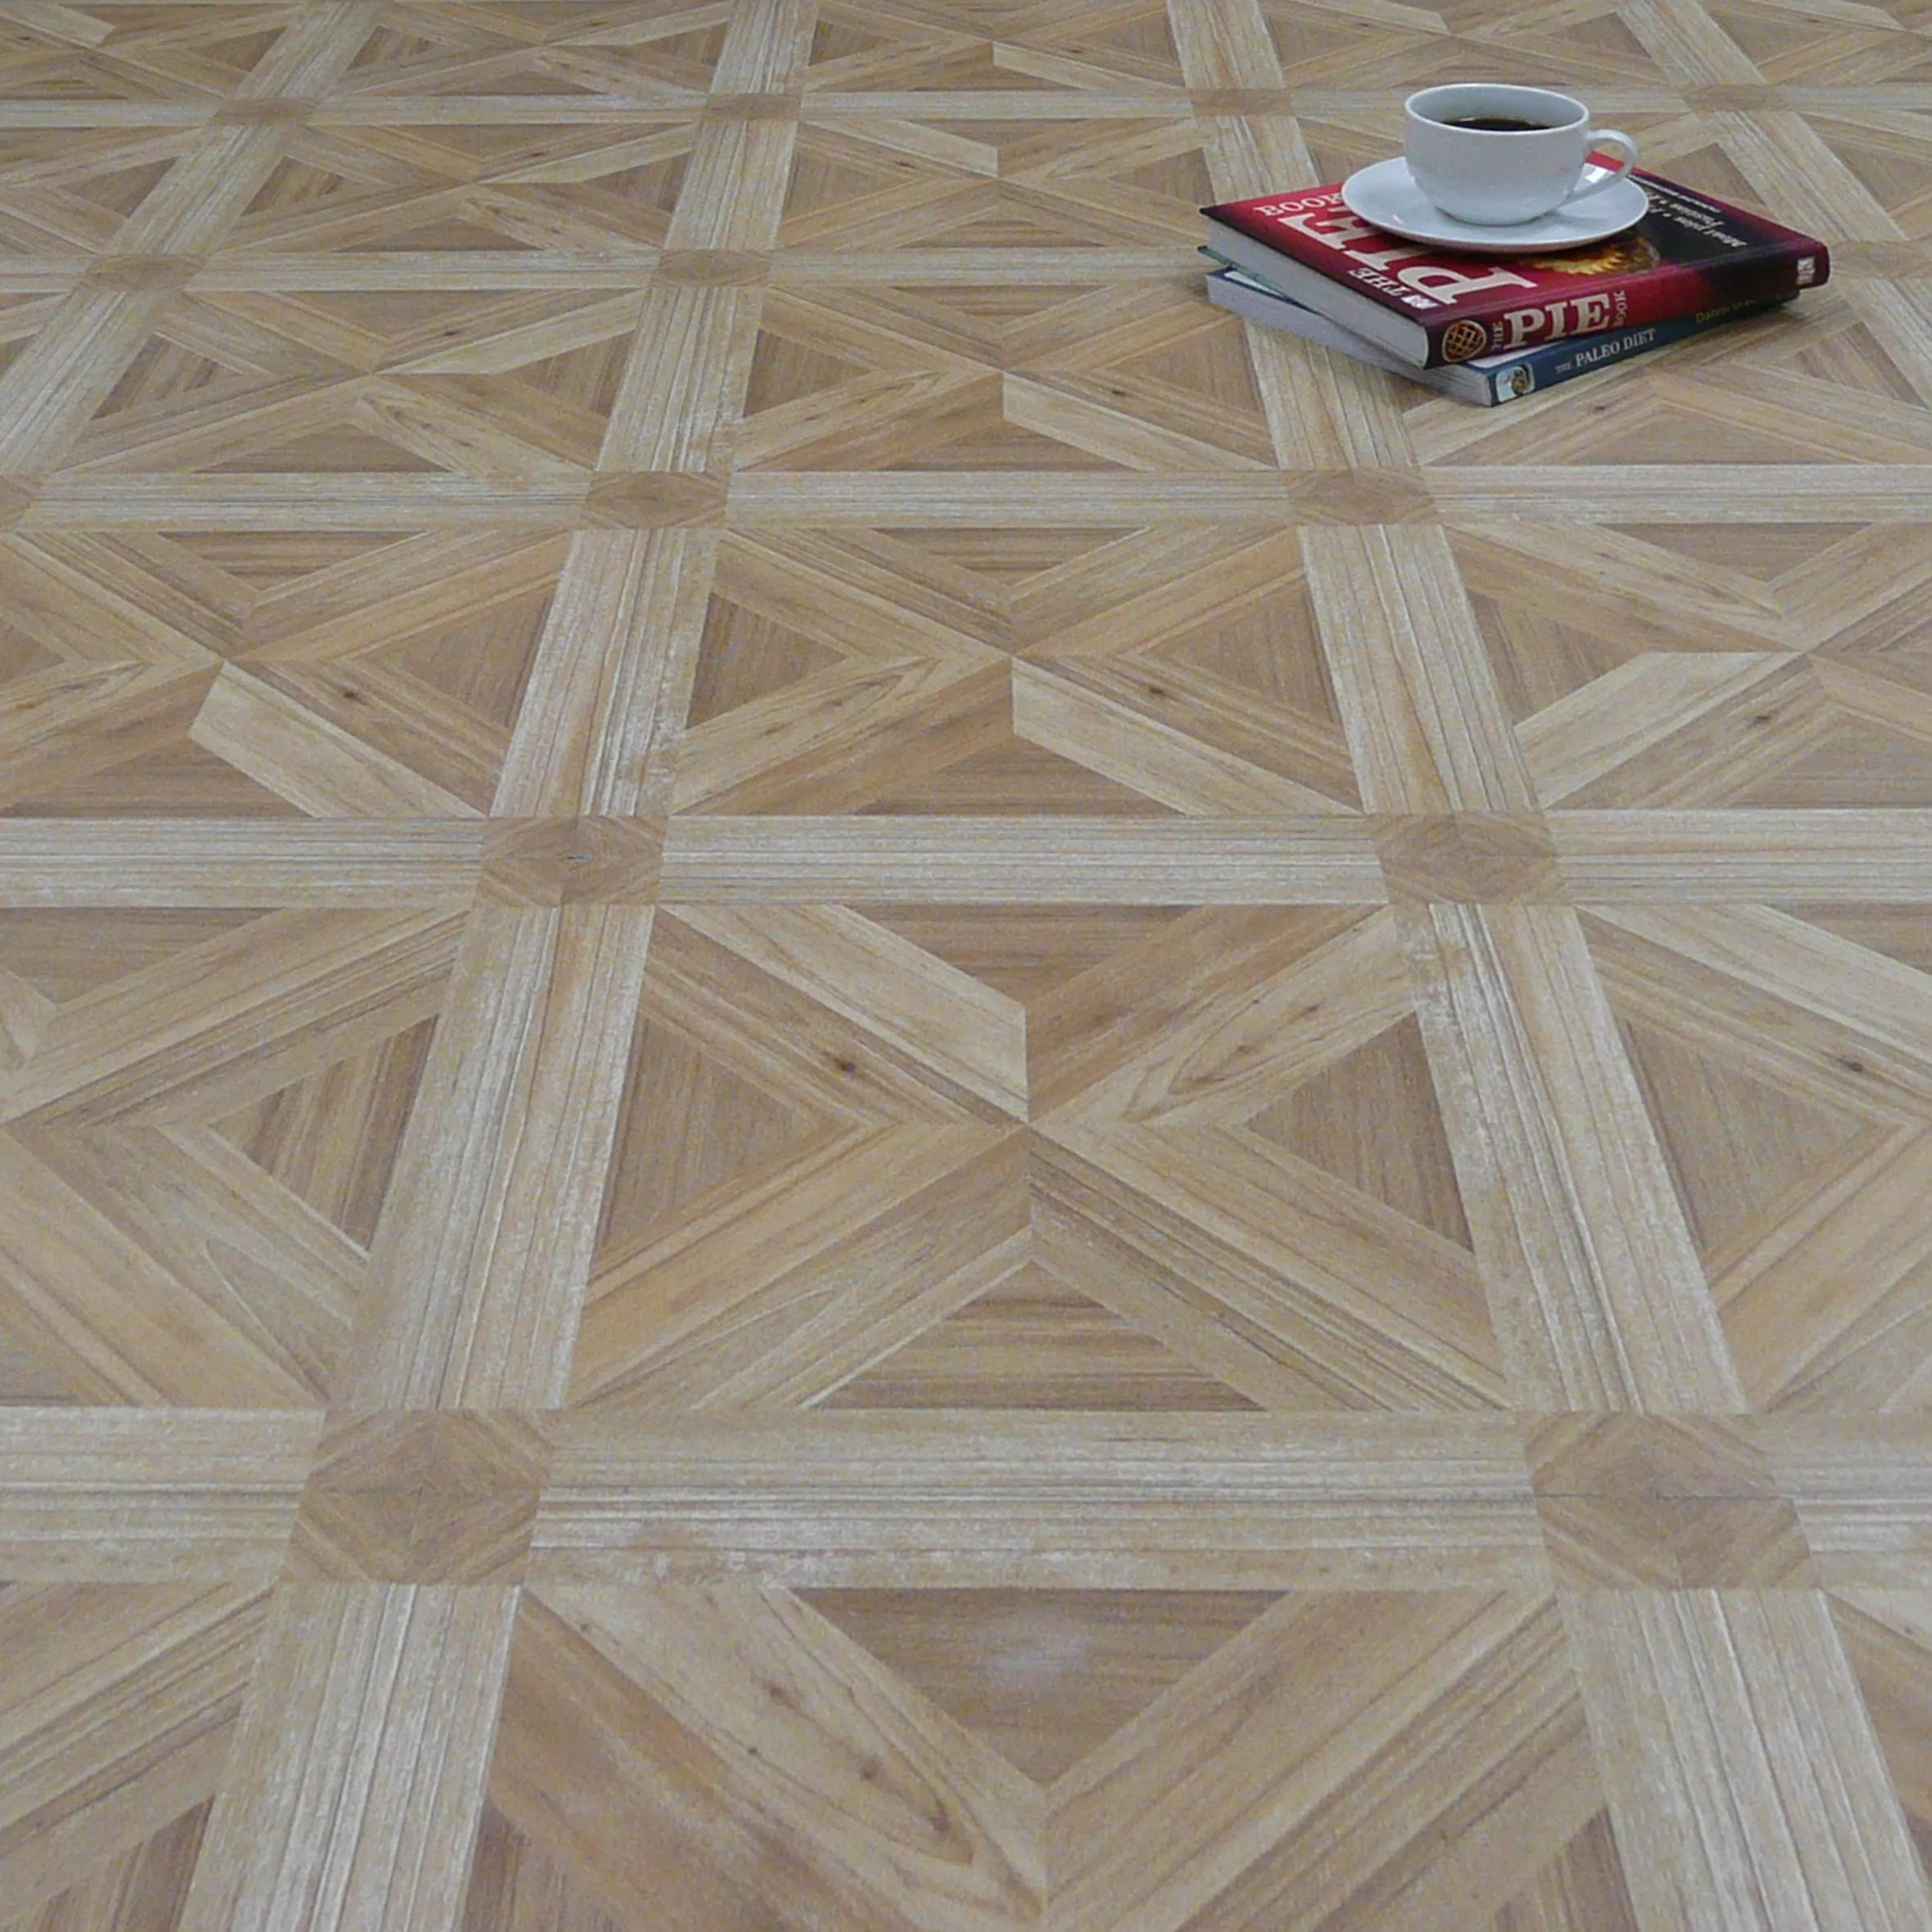 kitchen floor lino best place to buy a sink vinyl flooring buying guide | ideas & advice diy at b&q